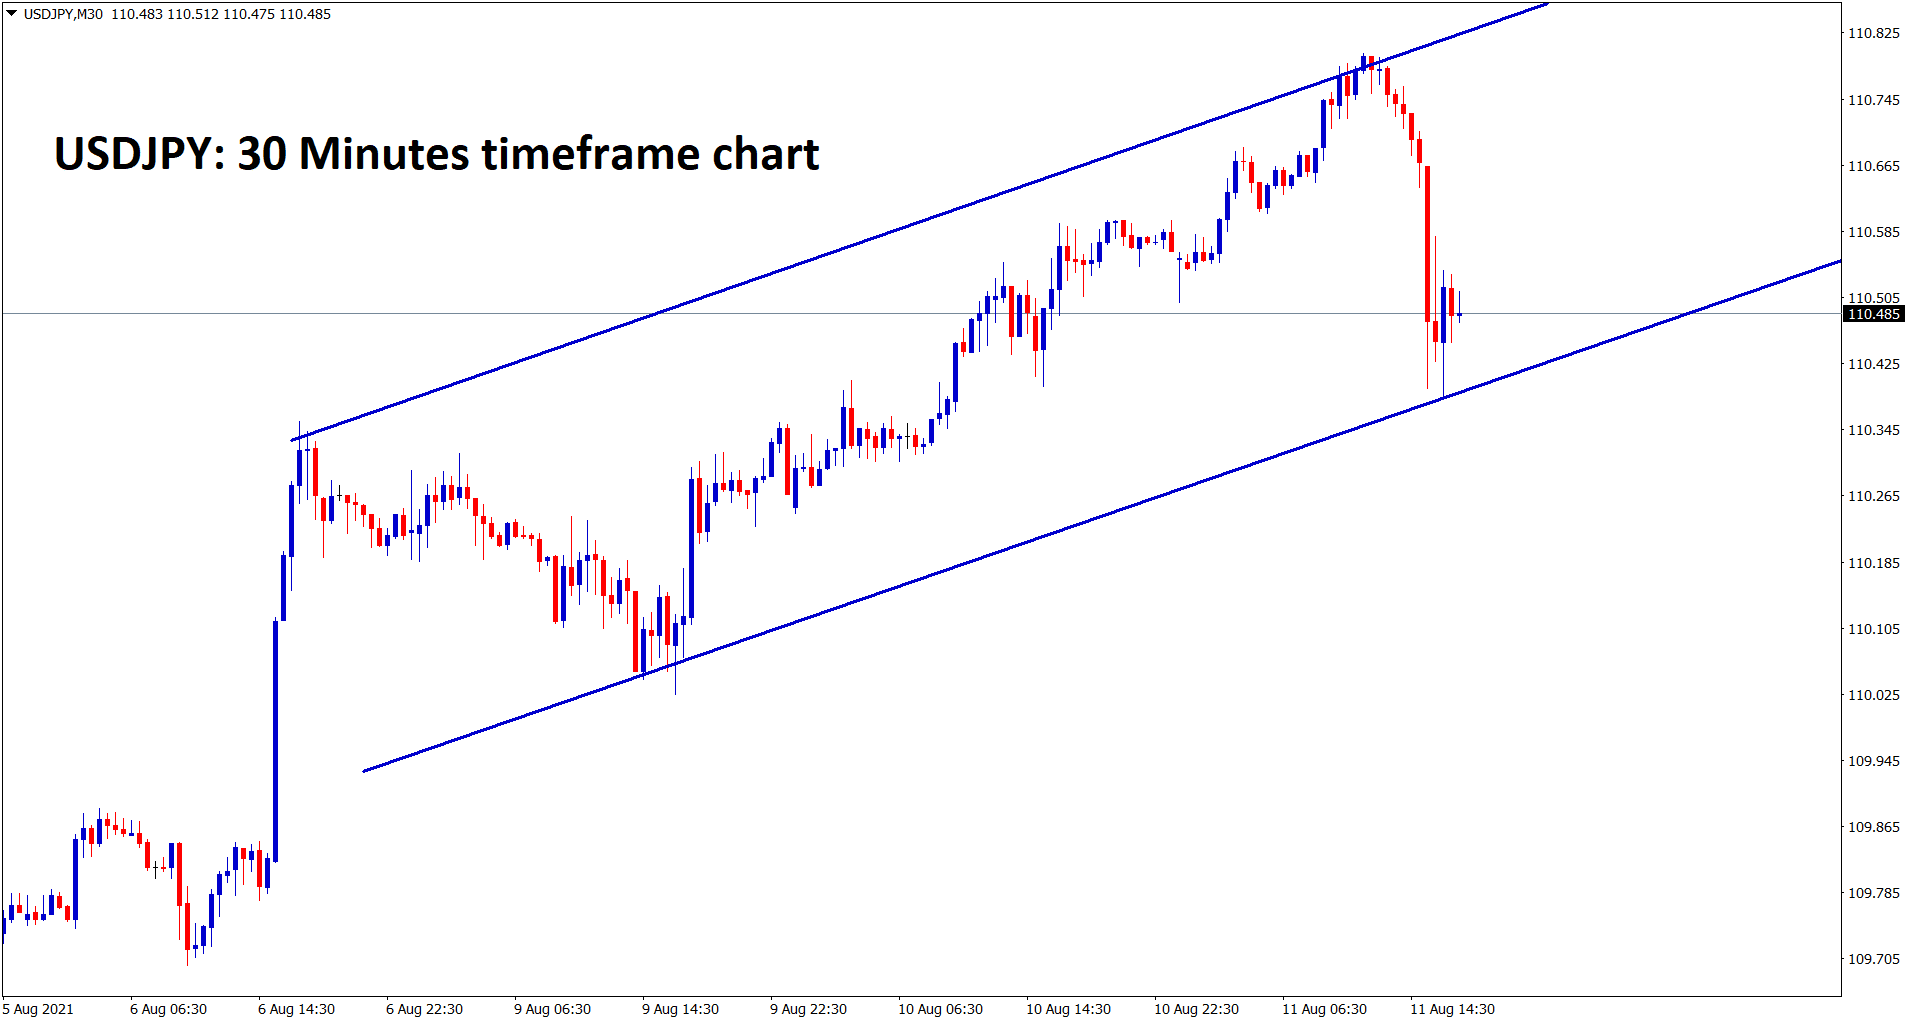 USDJPY is moving in a strong uptrend however the correction happened now wait for breakout from this ascending channel